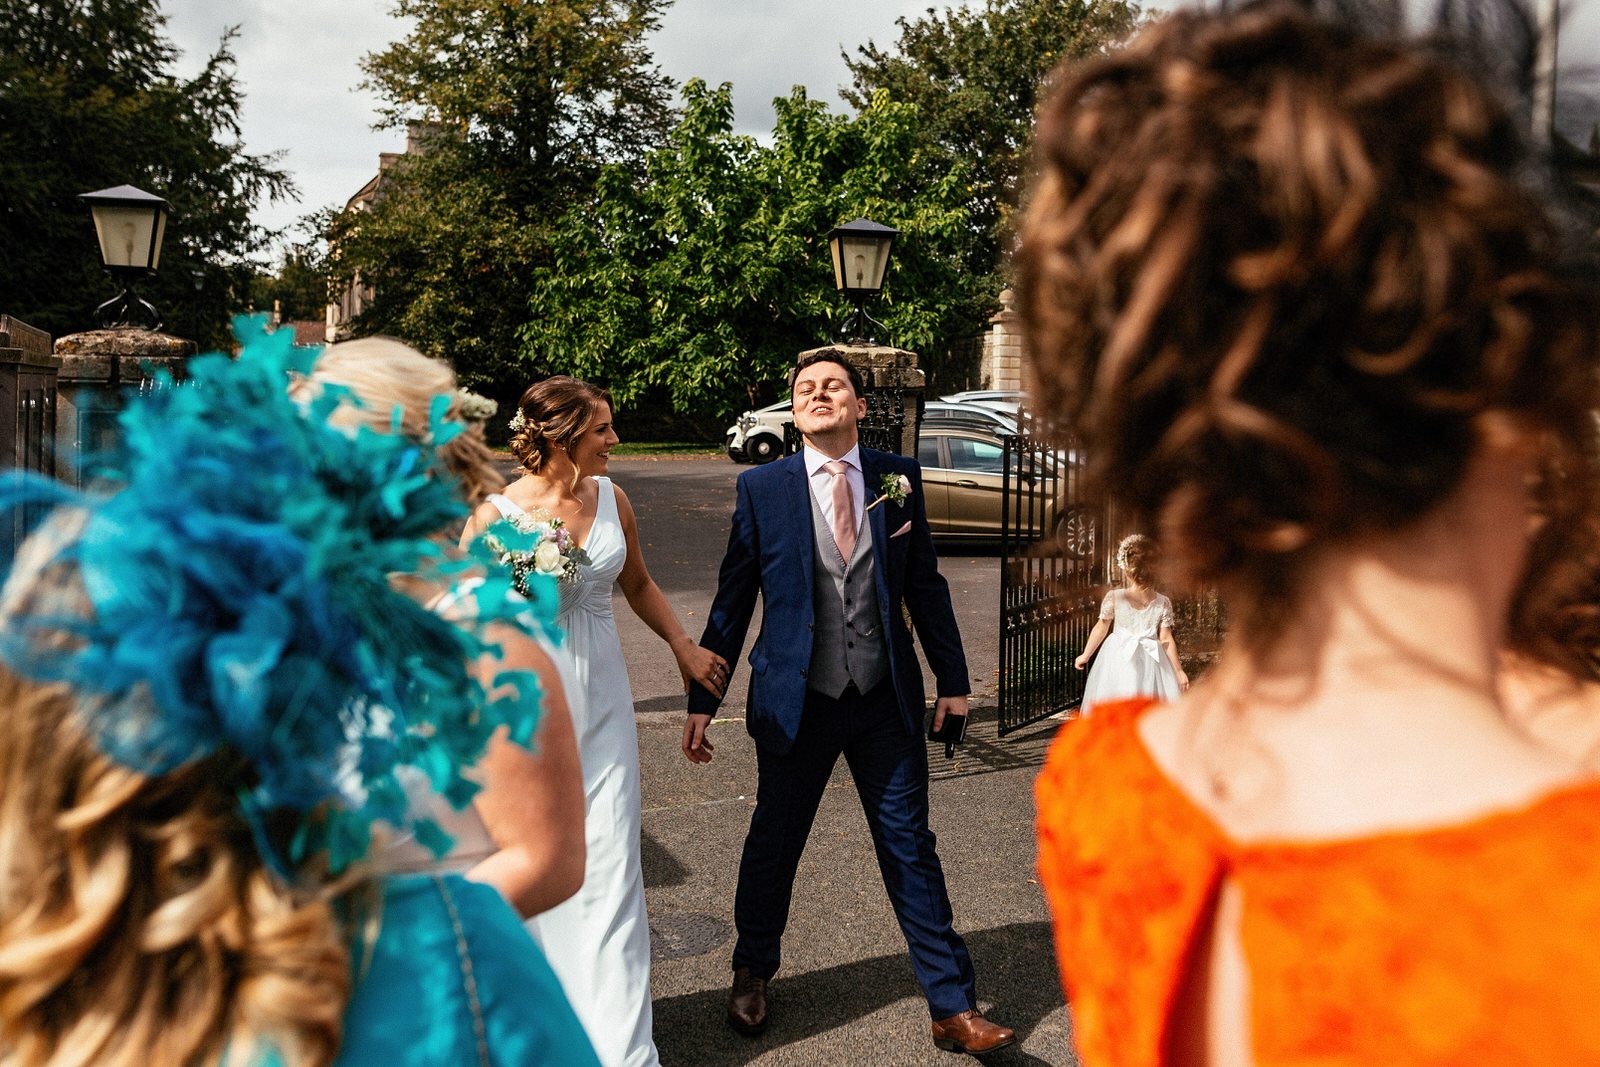 Winkworth-Farm-Wedding-Photographer-027.jpg